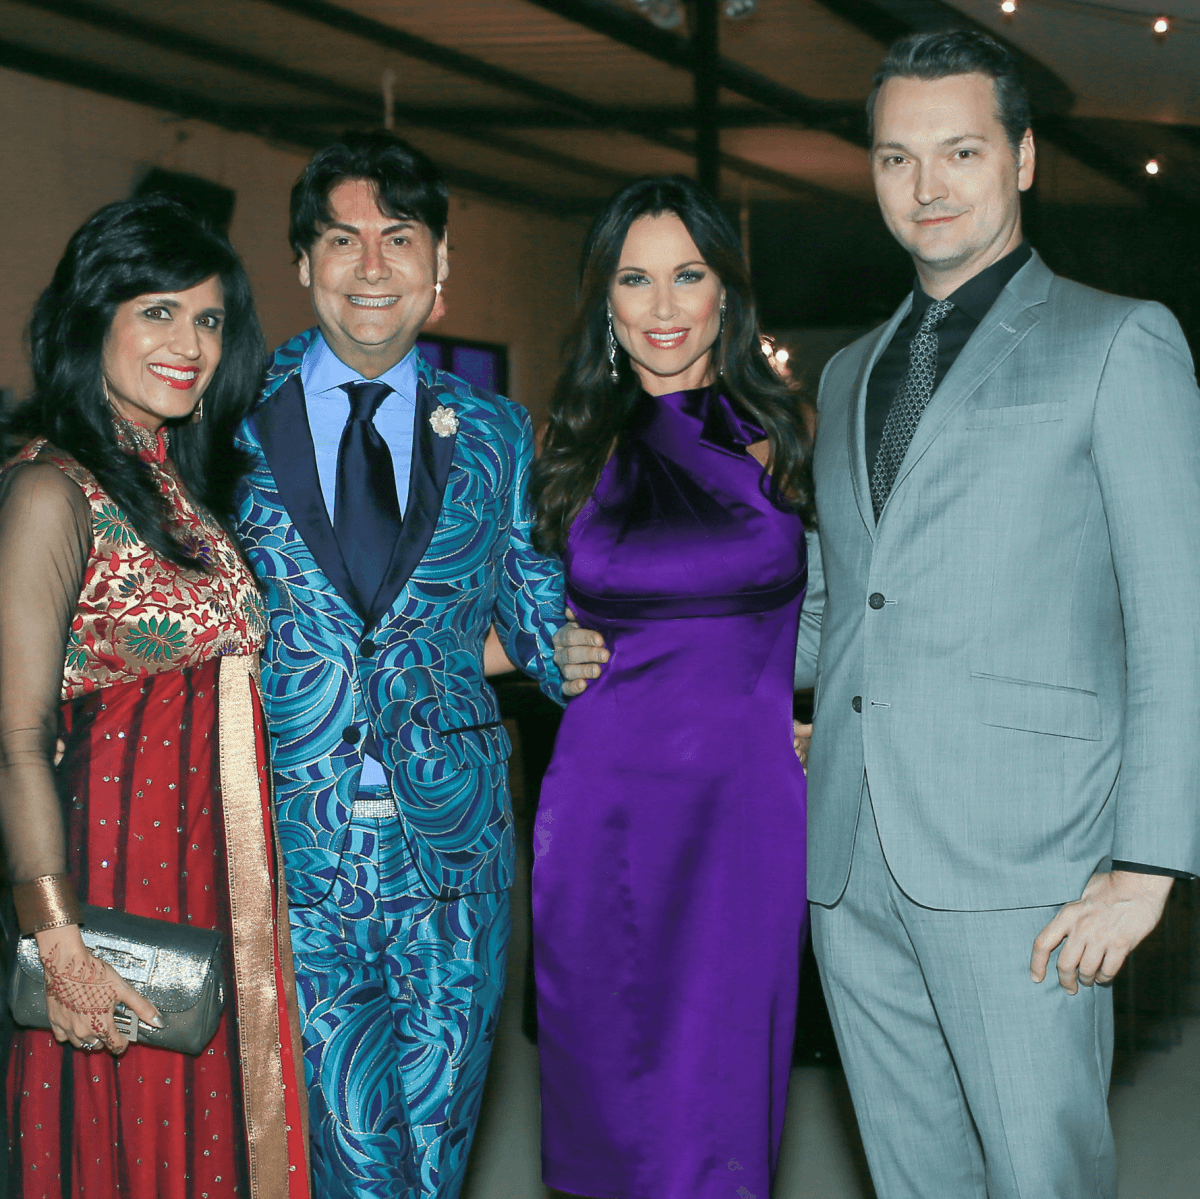 Ruby Bhandari, emcee Steve Kemble, LeeAnne Locken, Chad  Collom